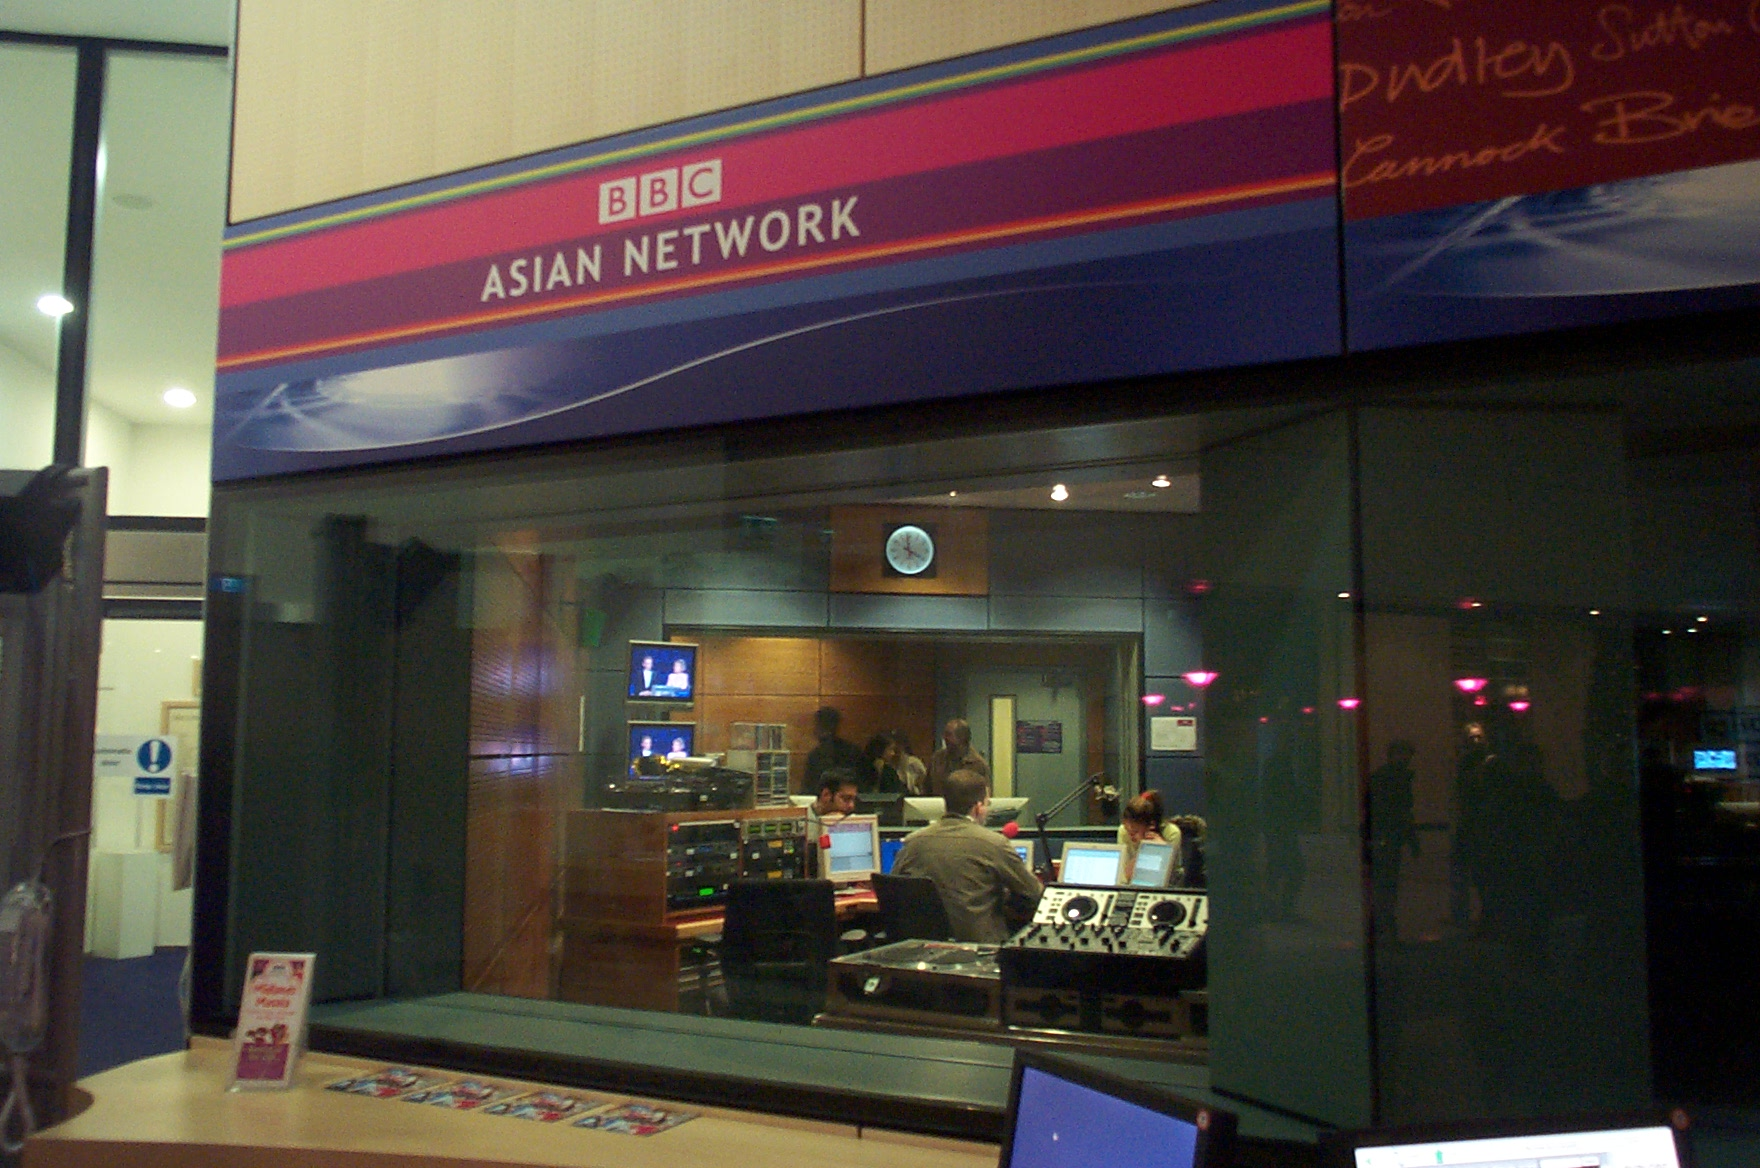 Radio 1 asian network